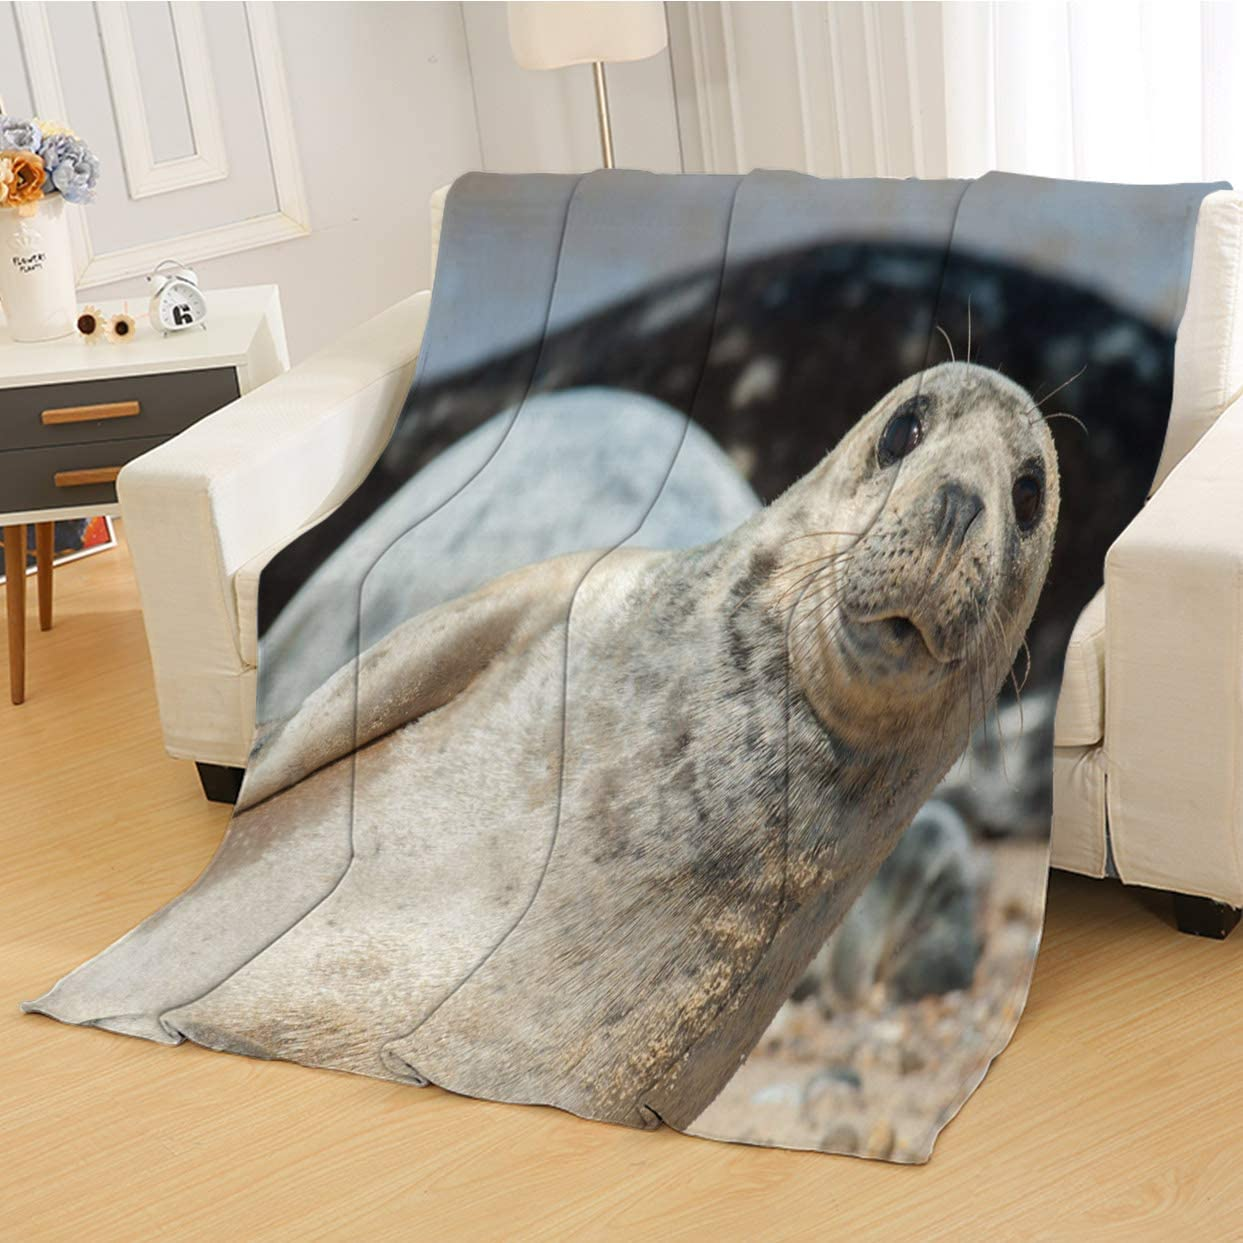 RLDSESS Soft Baby Blanket, All Season Blanket,Close Up of A Seal Pup,Soft Weighted Blanket,Baby Size: 31Wx47L inch